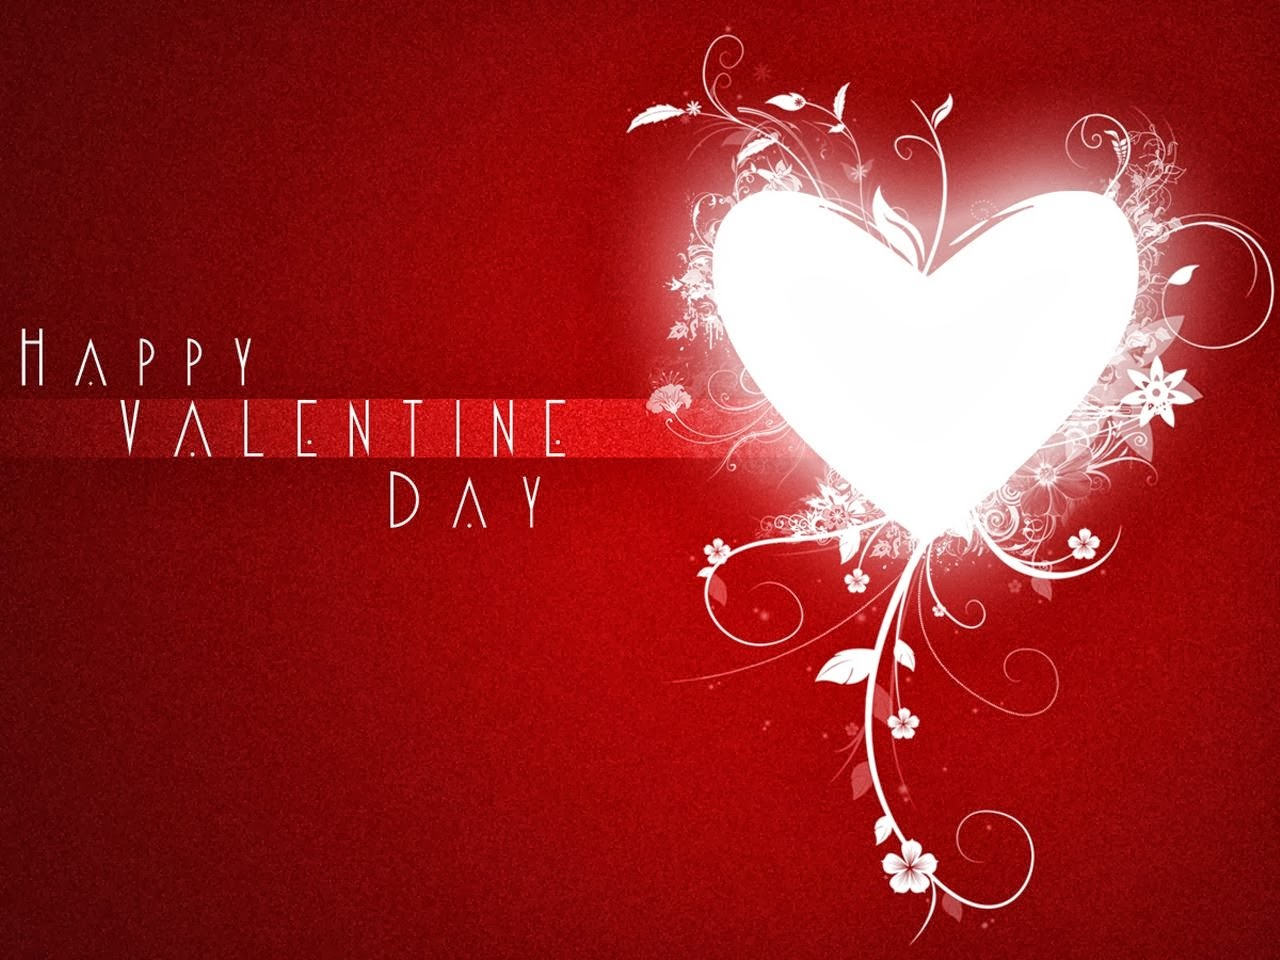 valentine animated wallpaper 2015   Grasscloth Wallpaper 1280x960